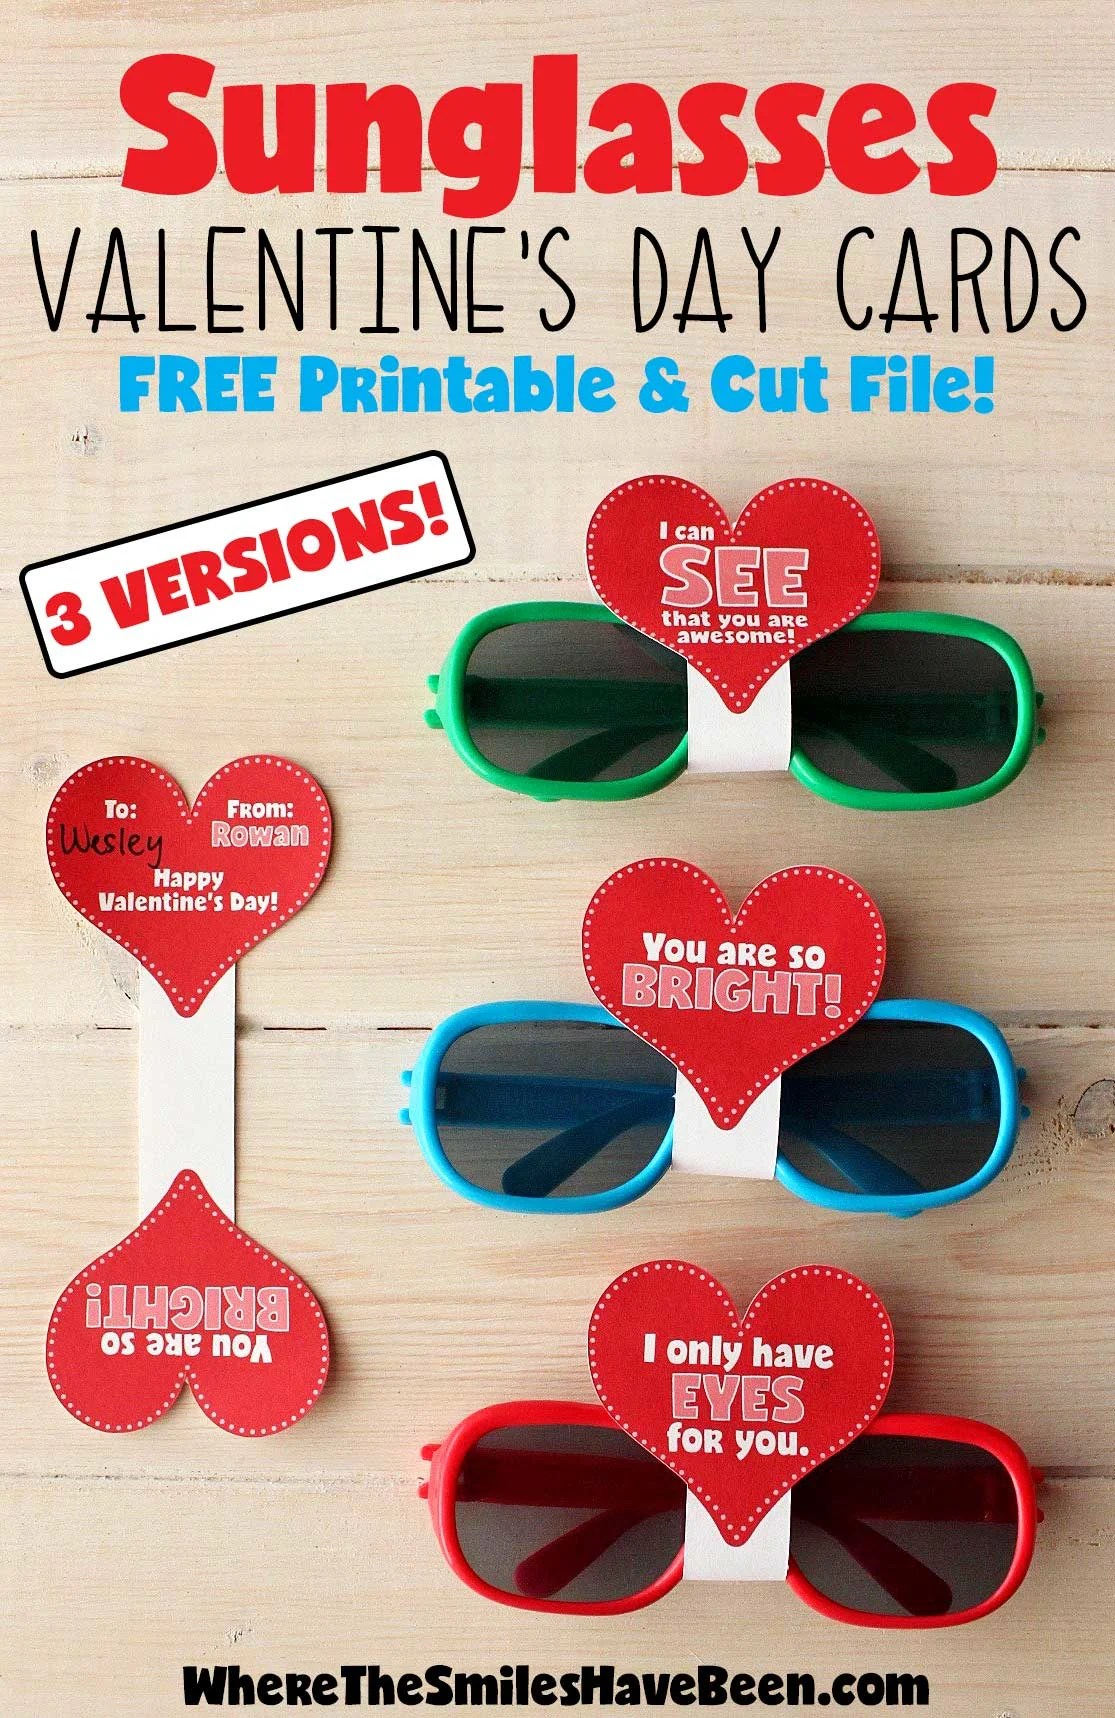 These Are So Cute And So Simple Love The Free Printable